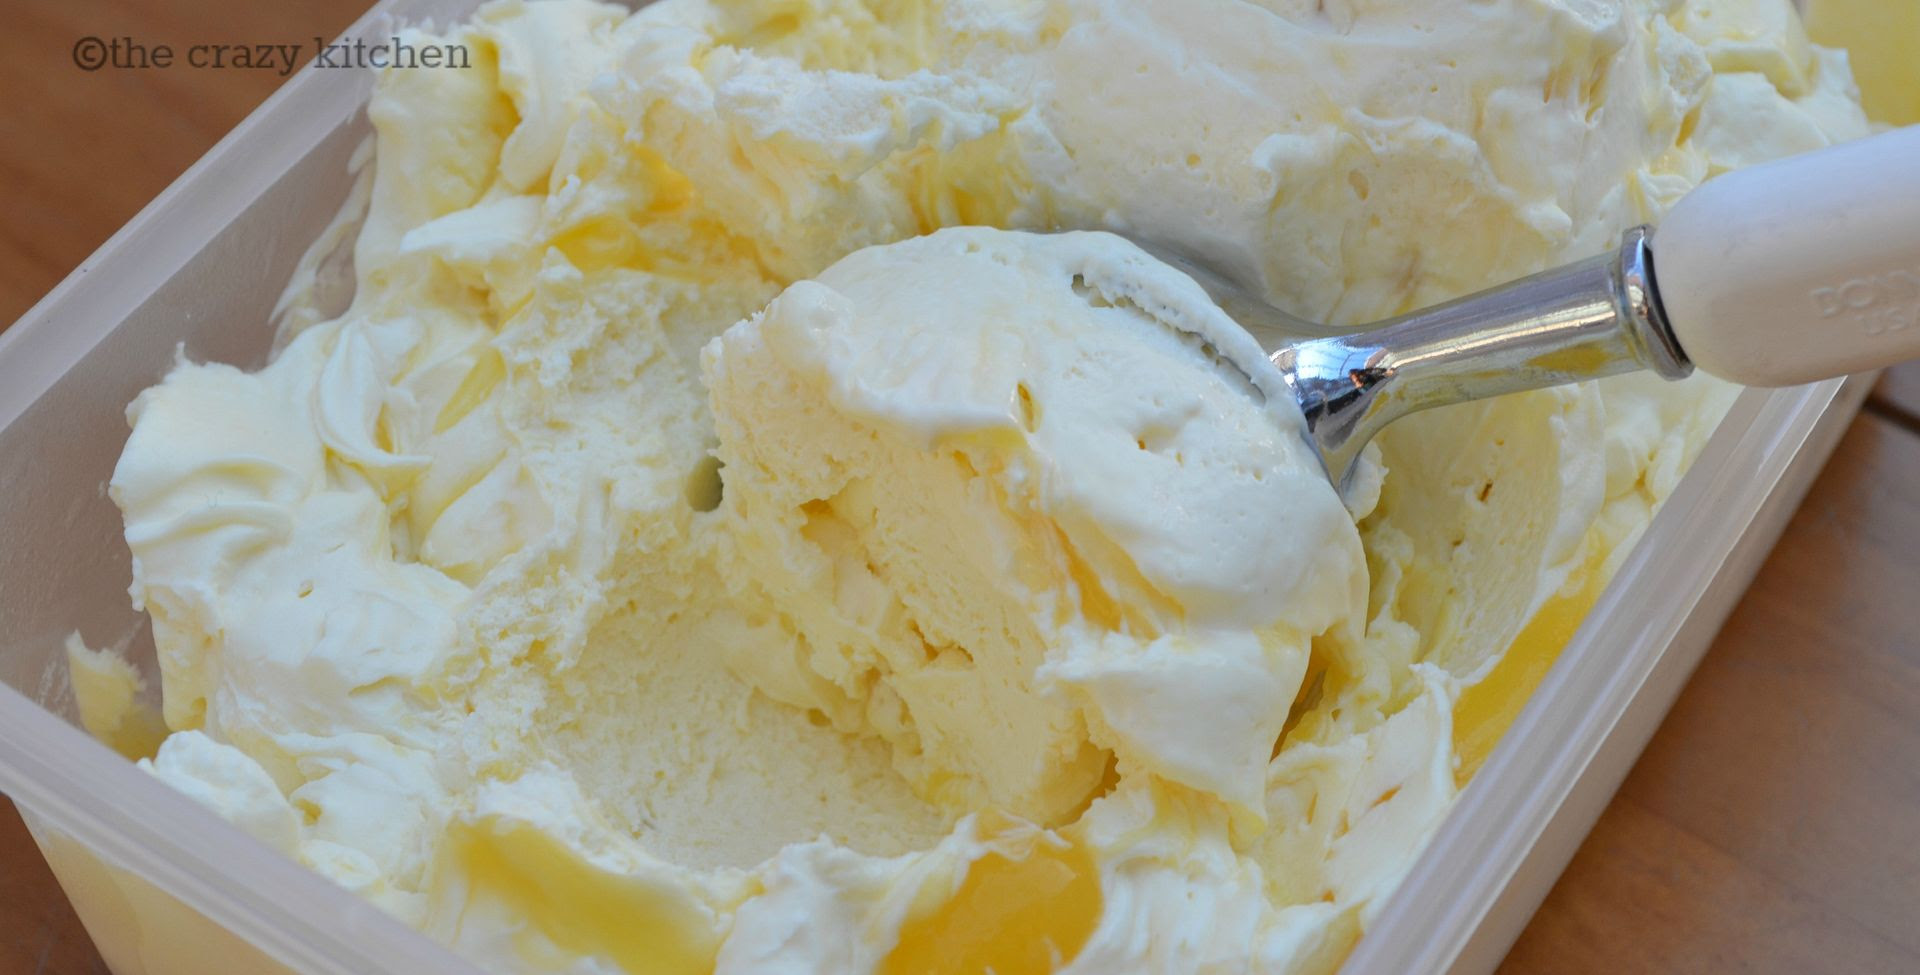 photo lemoncurdicecream_zpscee3a5eb.jpg